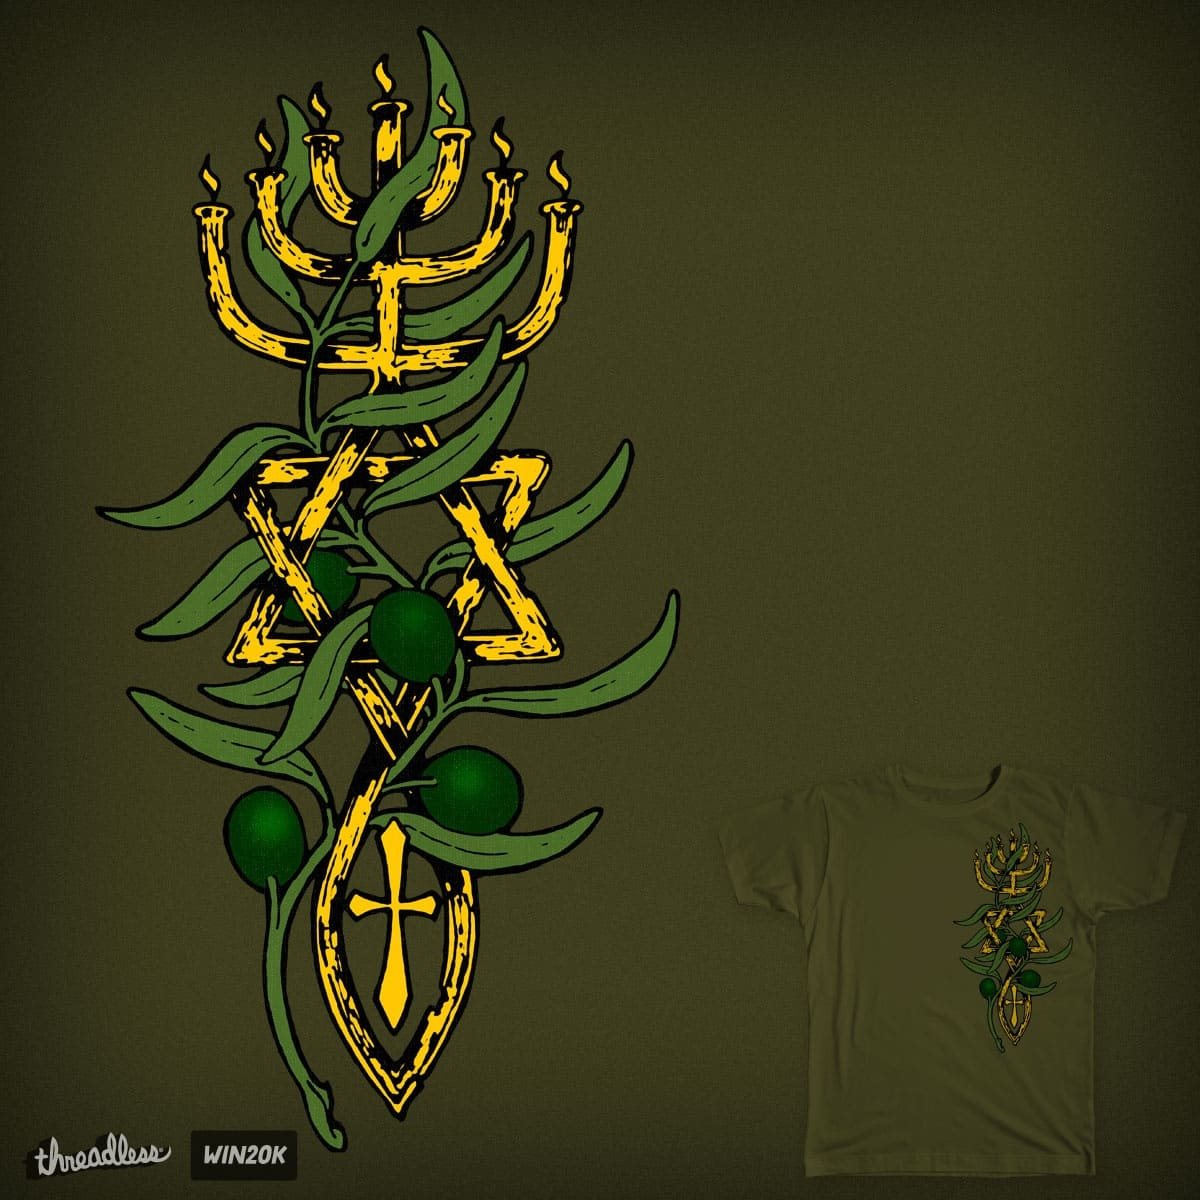 Oil of the Spirit by hassified on Threadless